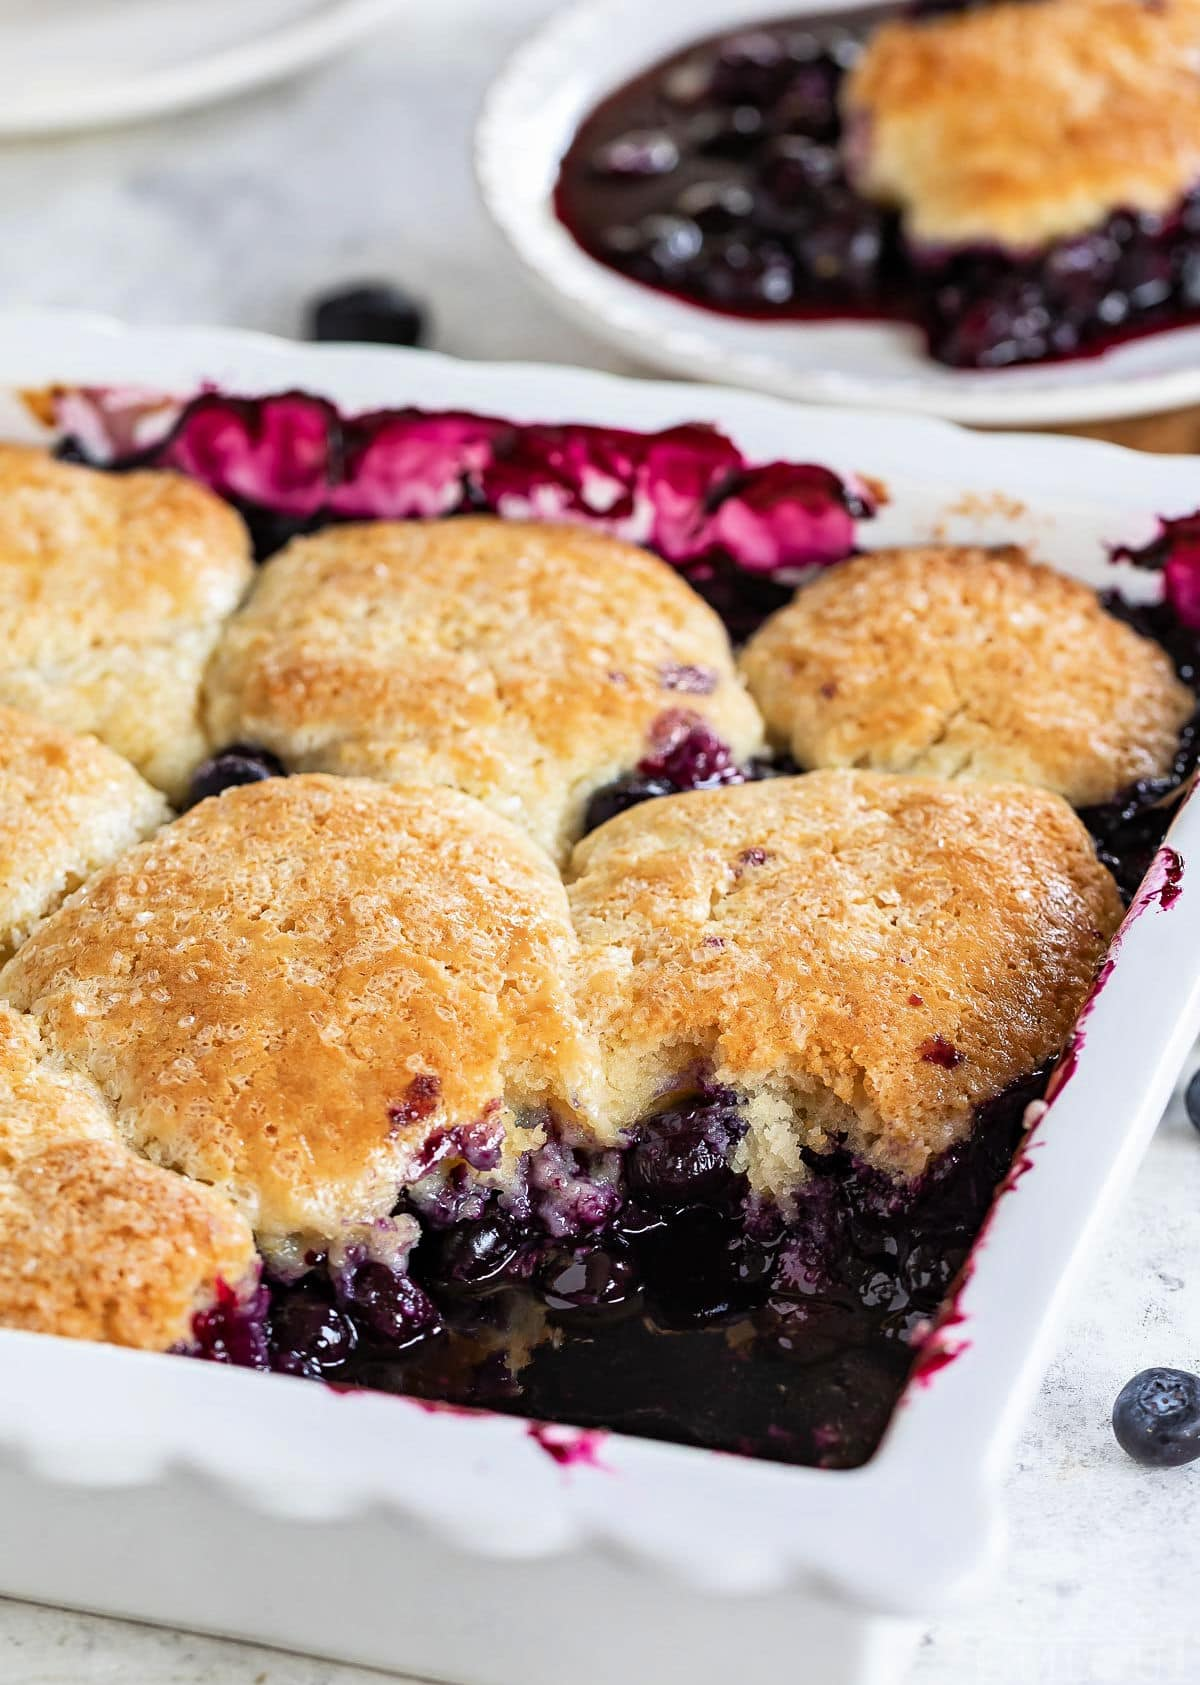 white baking dish with blueberry cobbler and one serving removed and sitting on plate in the background.